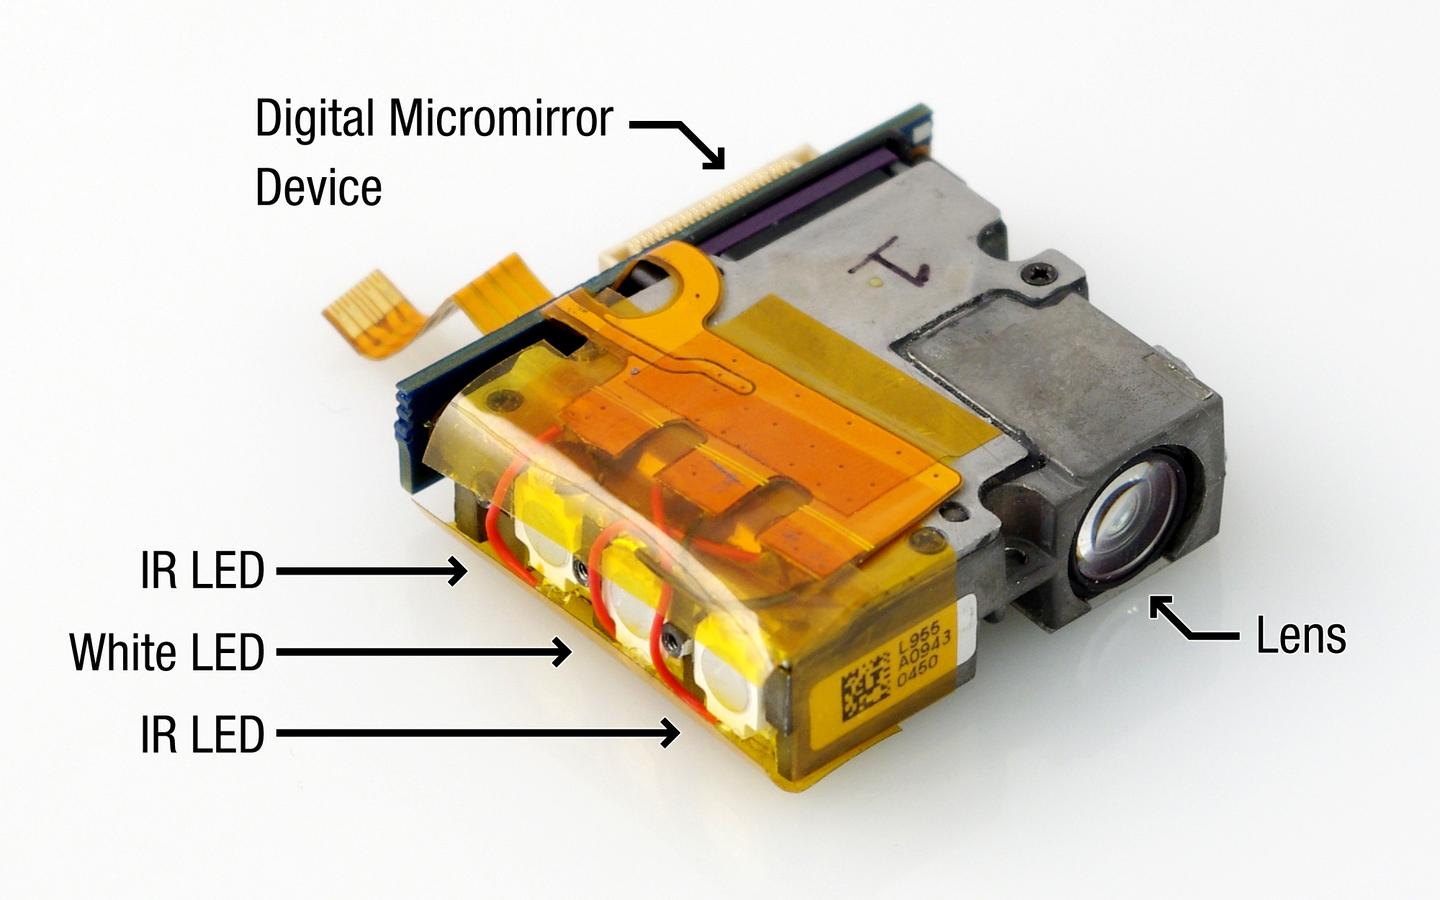 The SidebySide pico projector, which is part of the handheld device (Photo: Disney Research)